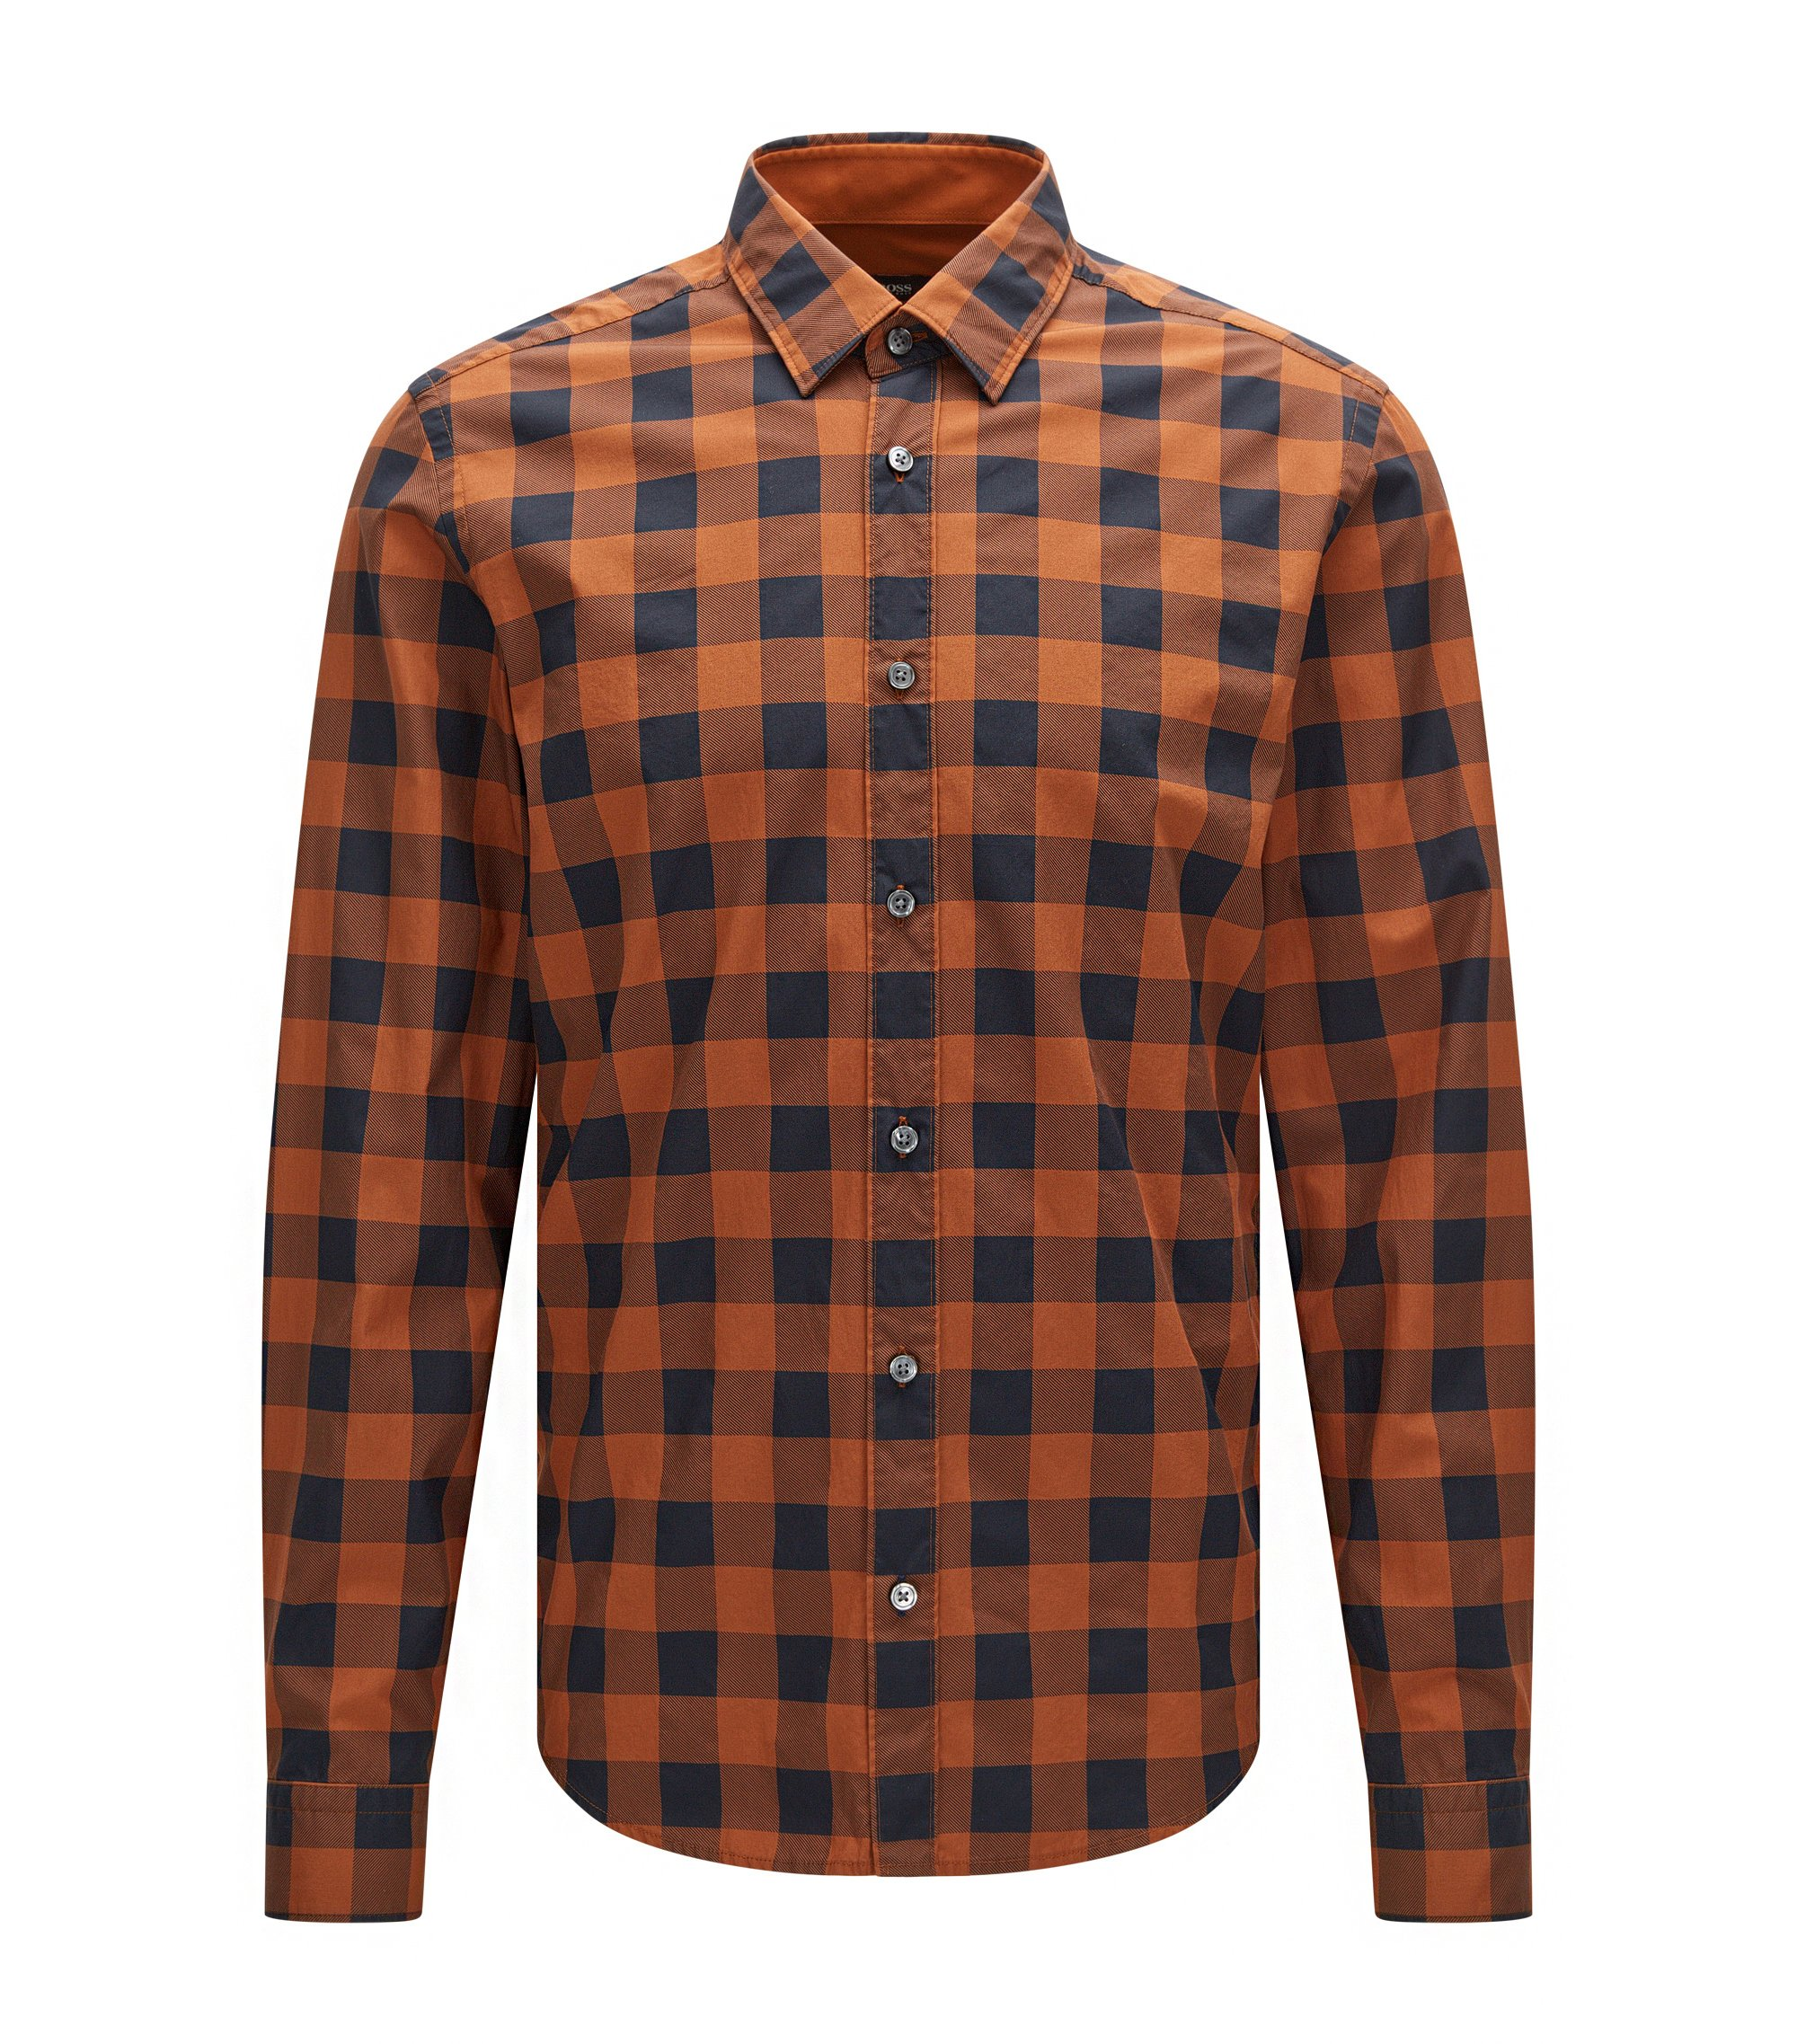 Buffalo Check Cotton Button Down Shirt, Regular Fit | Lance, Brown